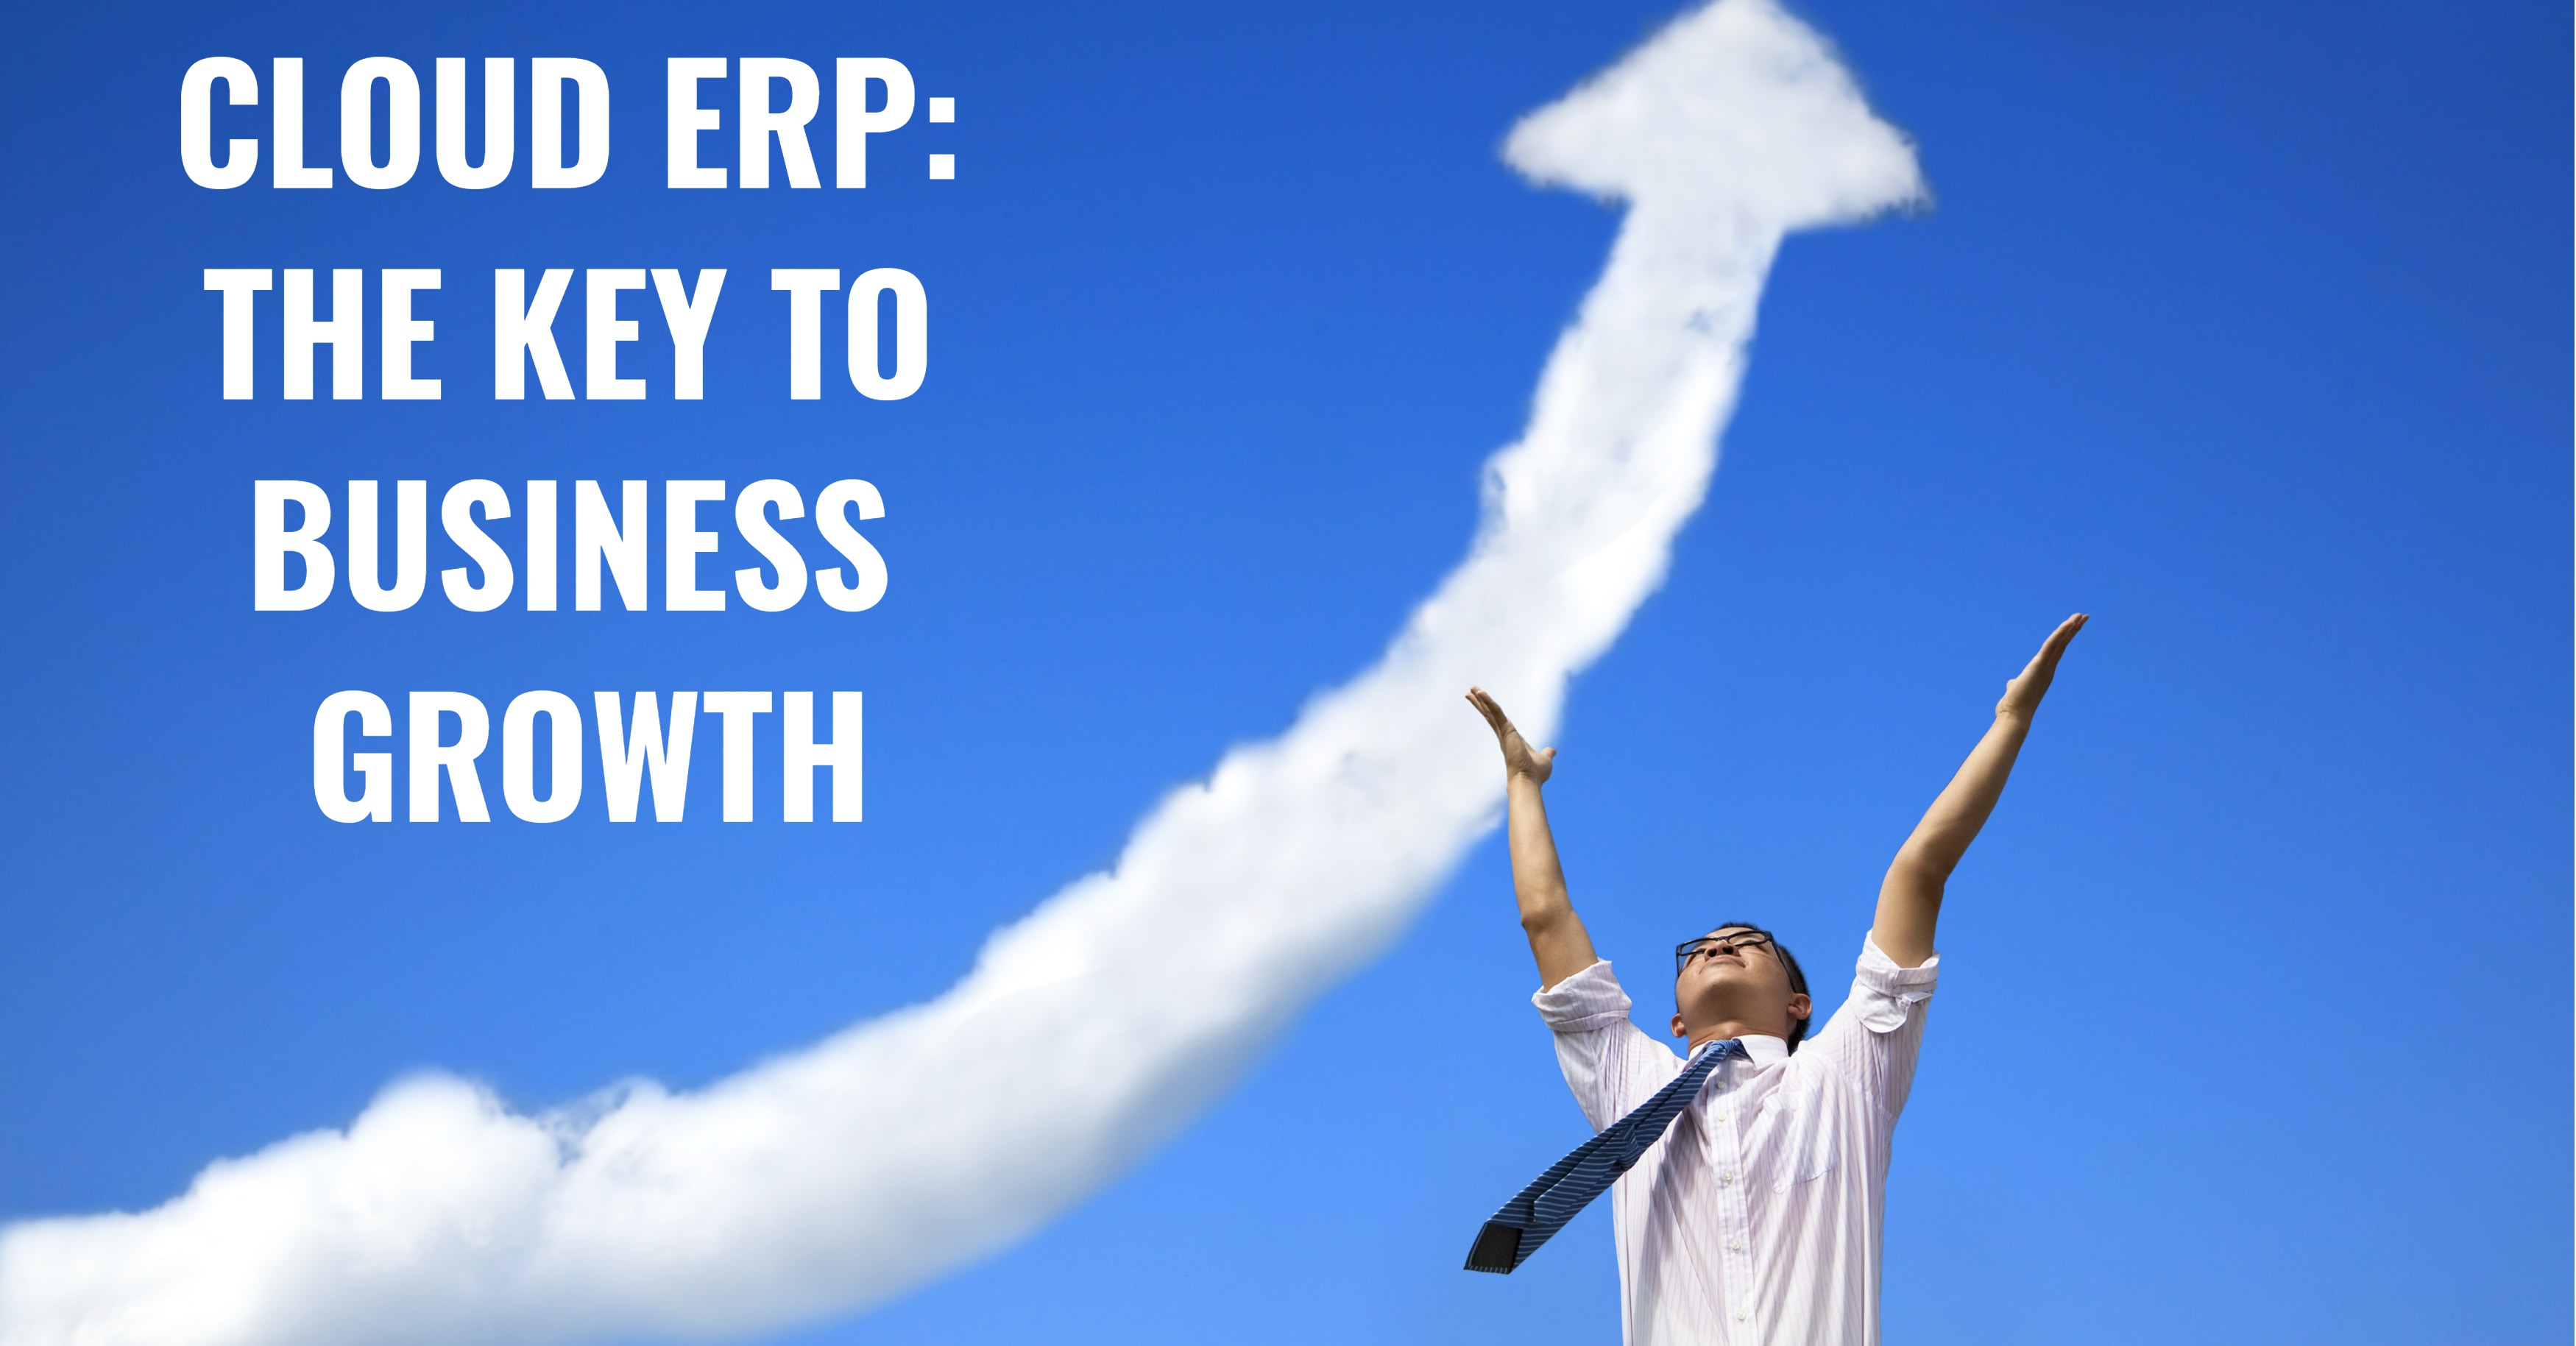 Cloud ERP: The Key to Business Growth